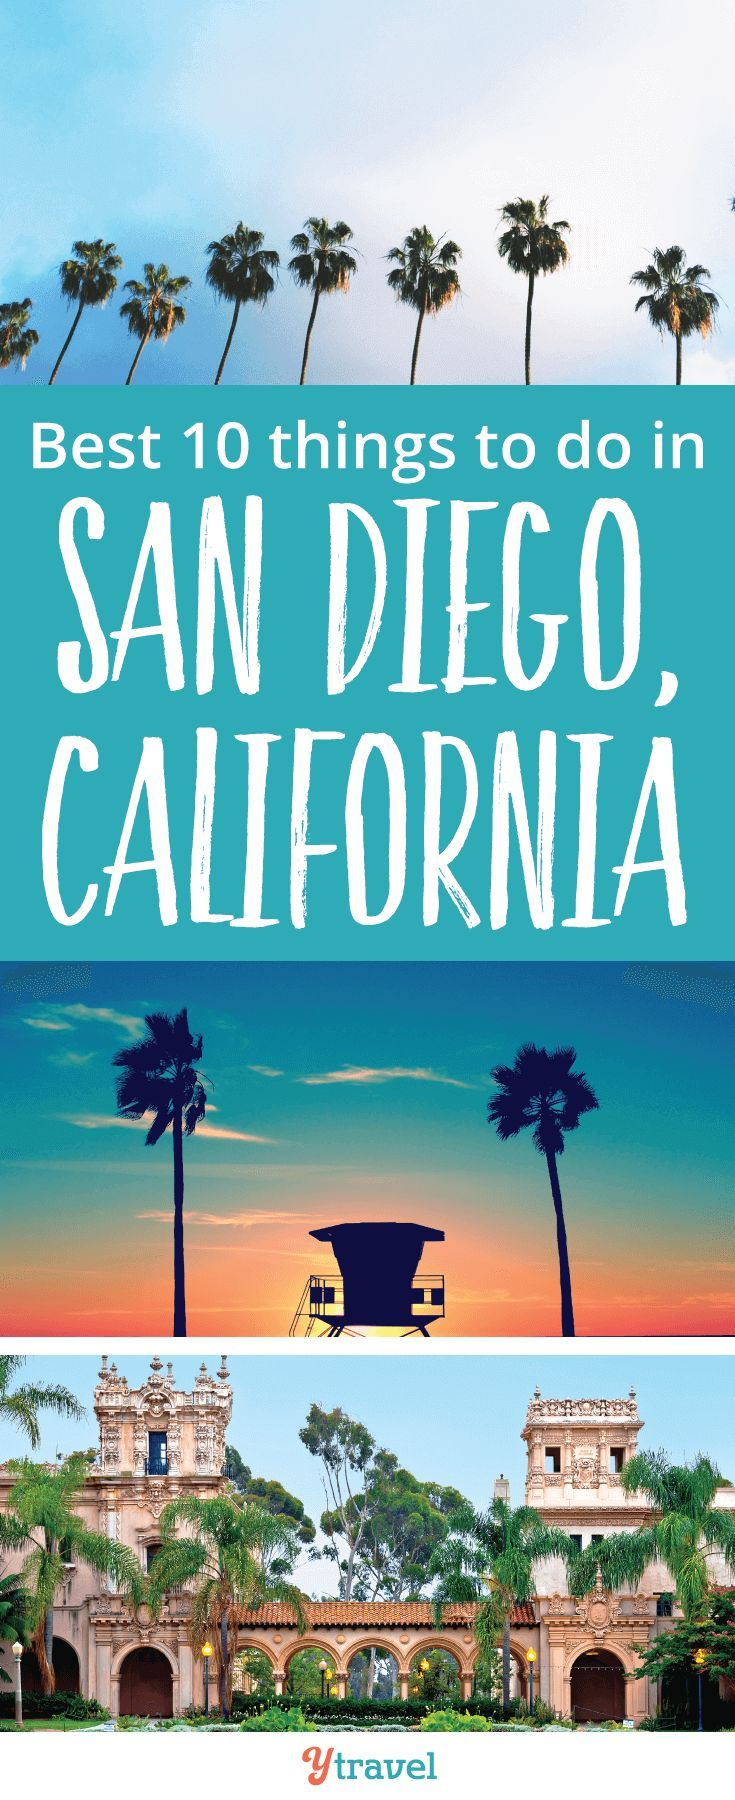 Are You Looking For Things To Do In San Diego Check Out The Beautiful Beaches